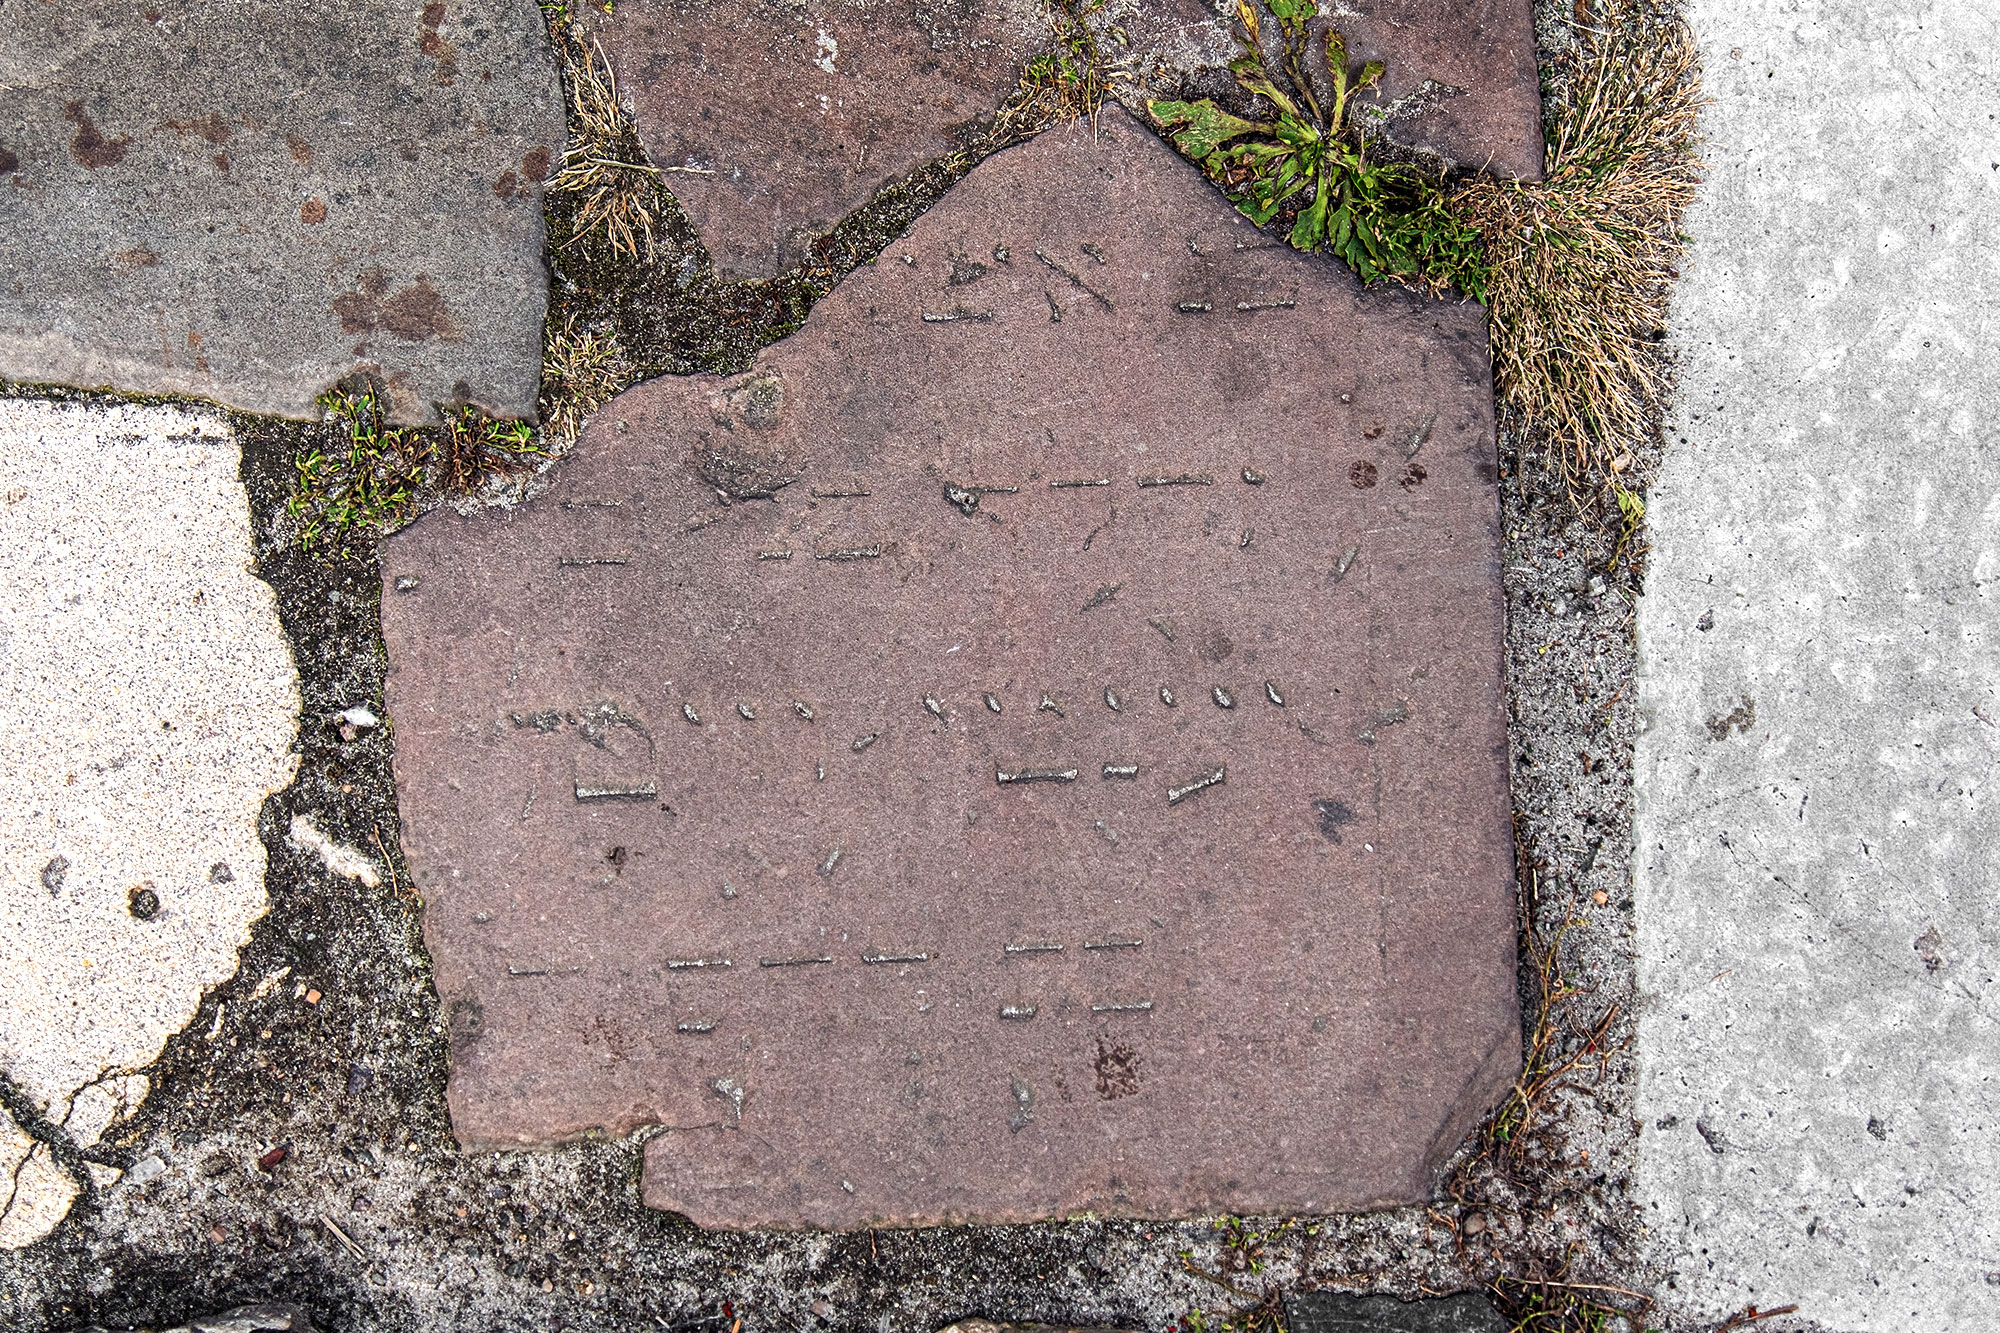 Lviv - fragment of a Jewish tombstone in the street paving